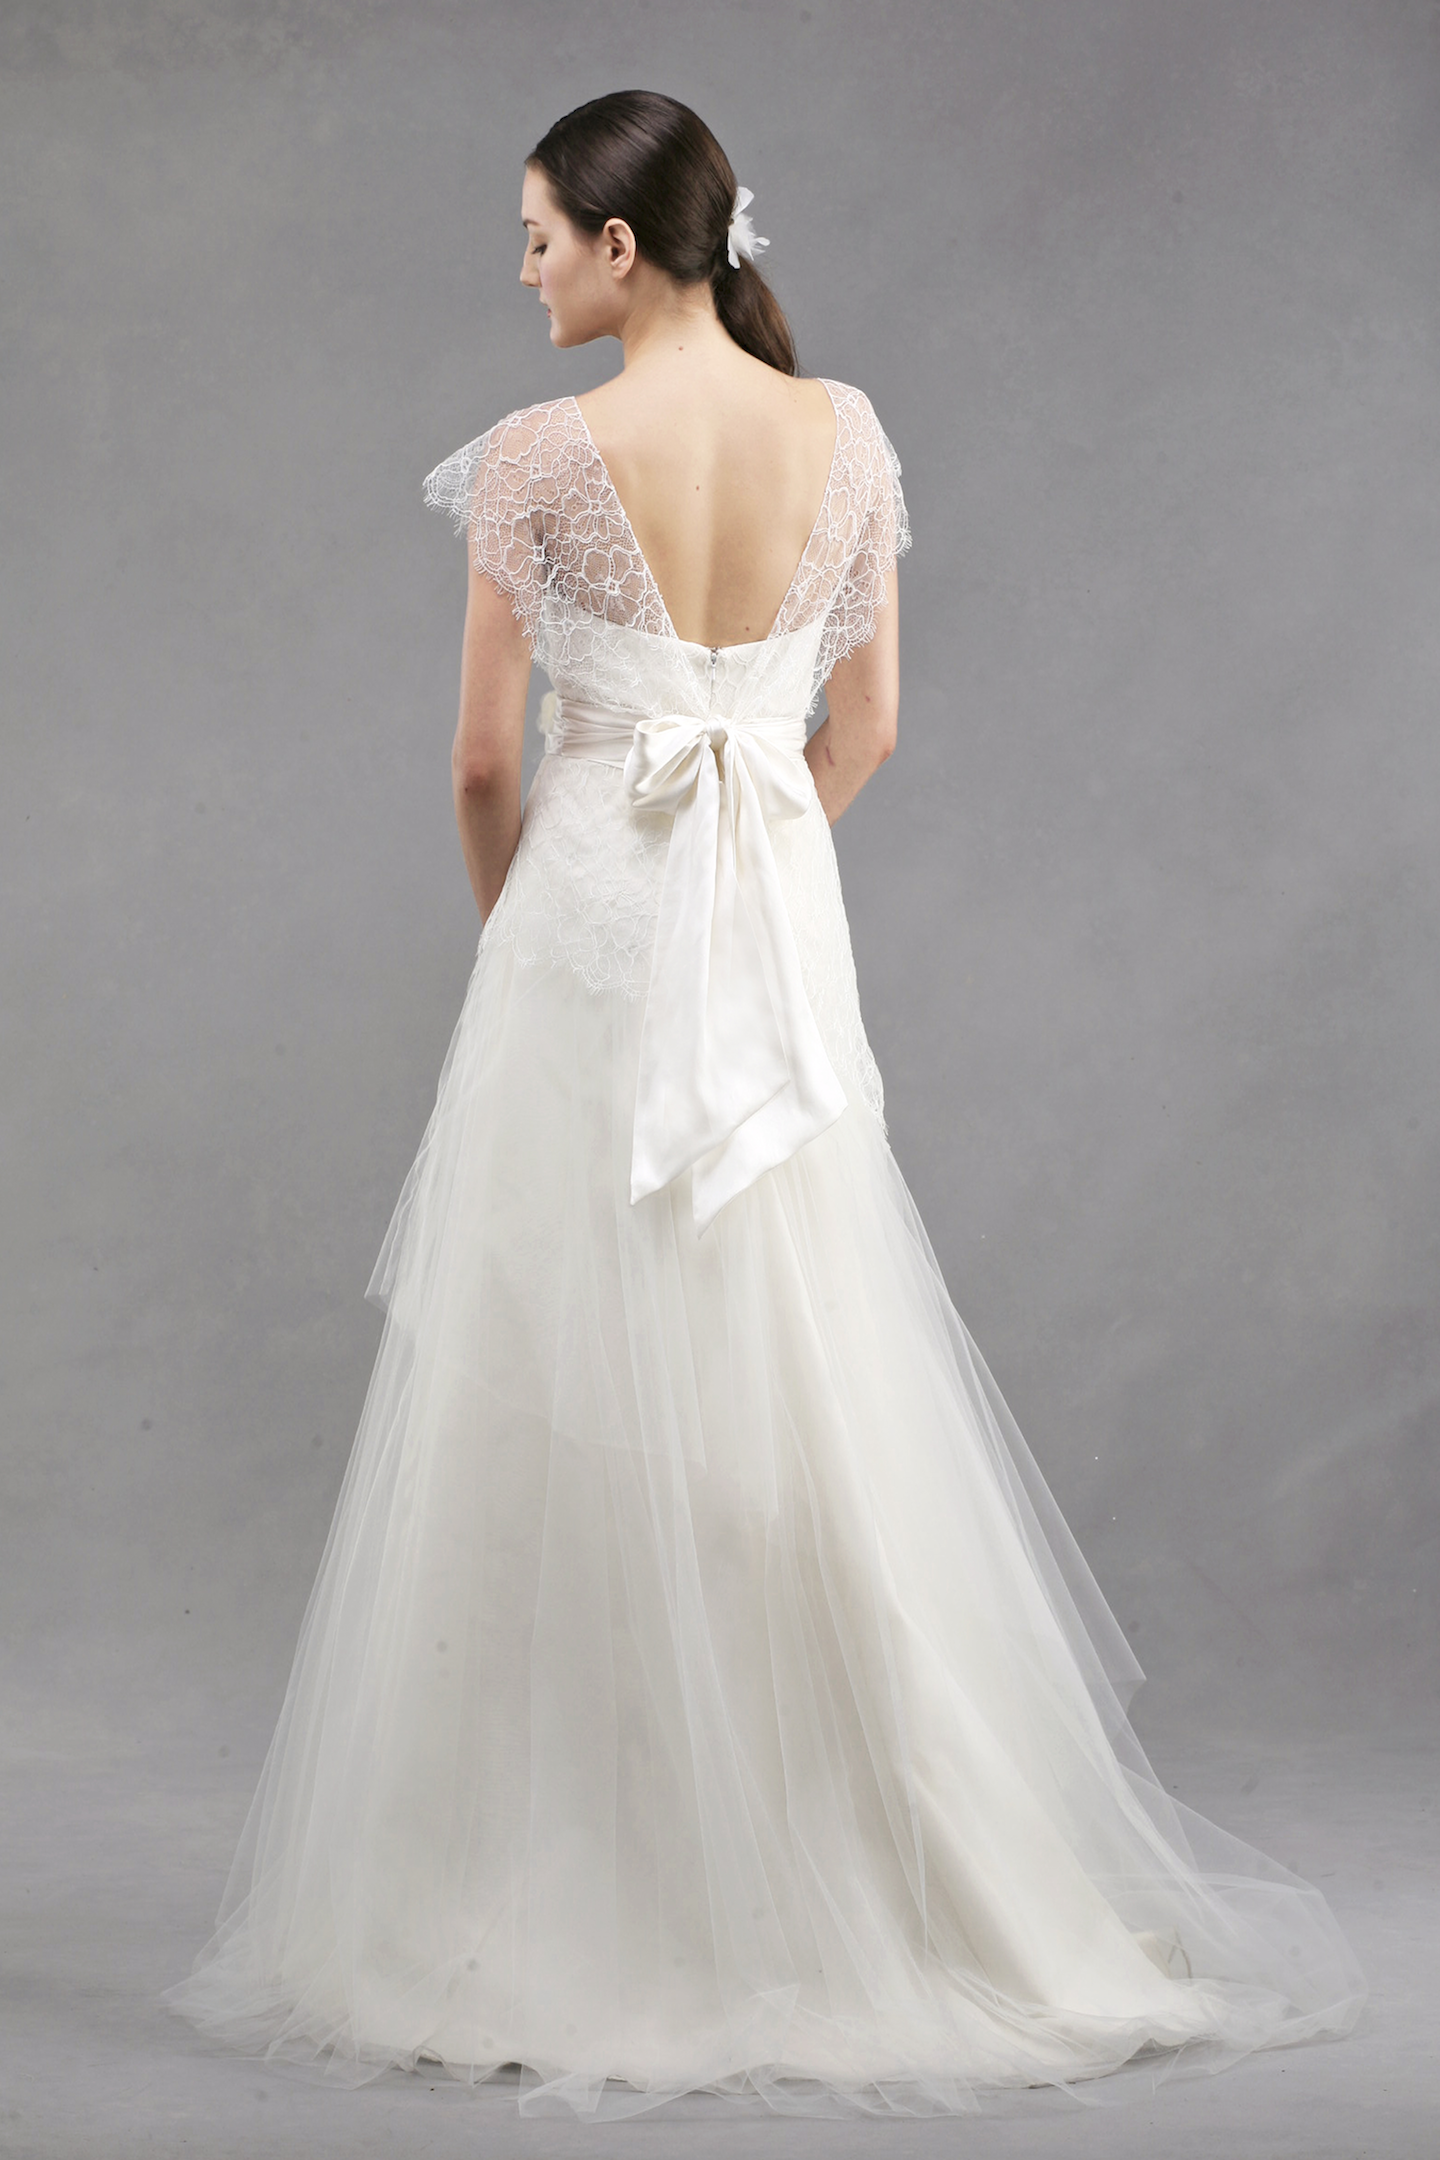 Wedding-dress-by-jenny-yoo-spring-2013-bridal-arianna-back.original